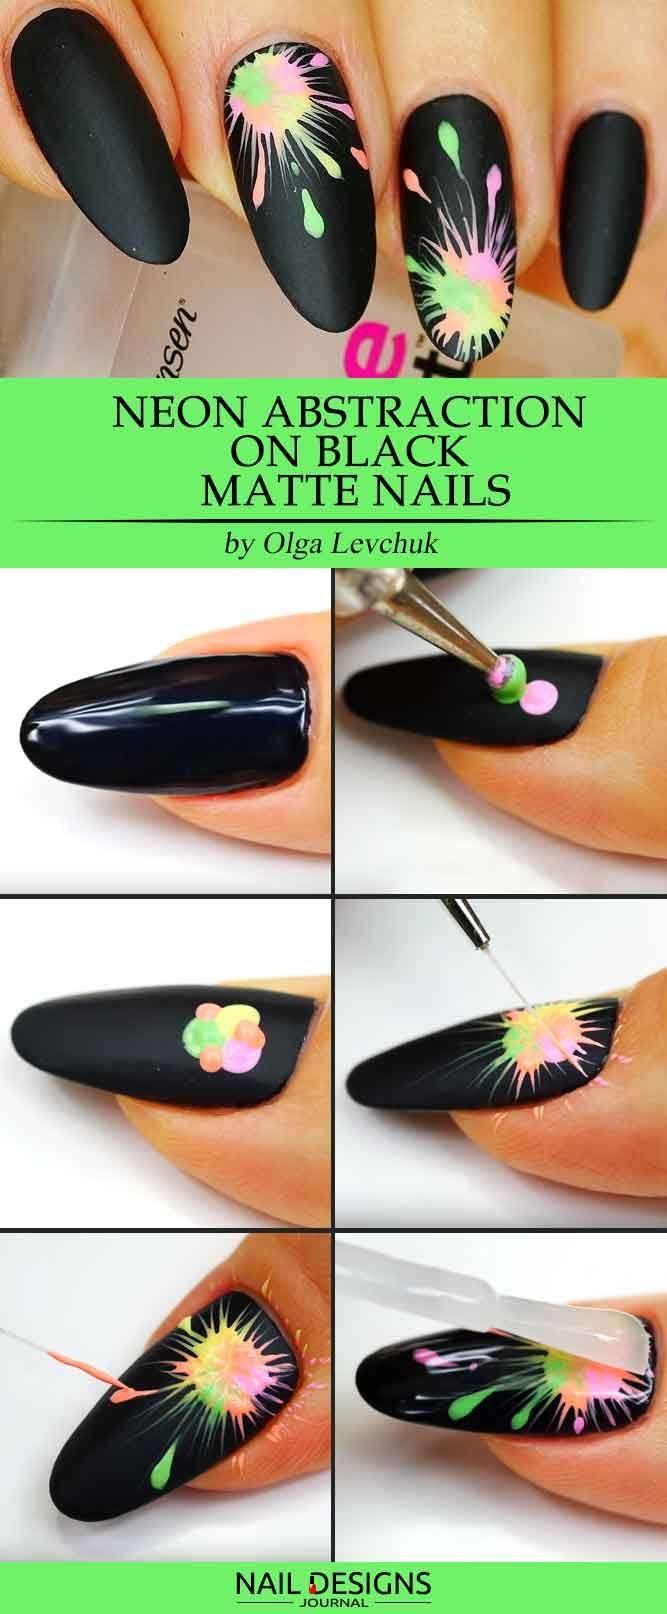 10 Easy Tutorials: Different Nail Designs Step-by-Step - Nagel ...